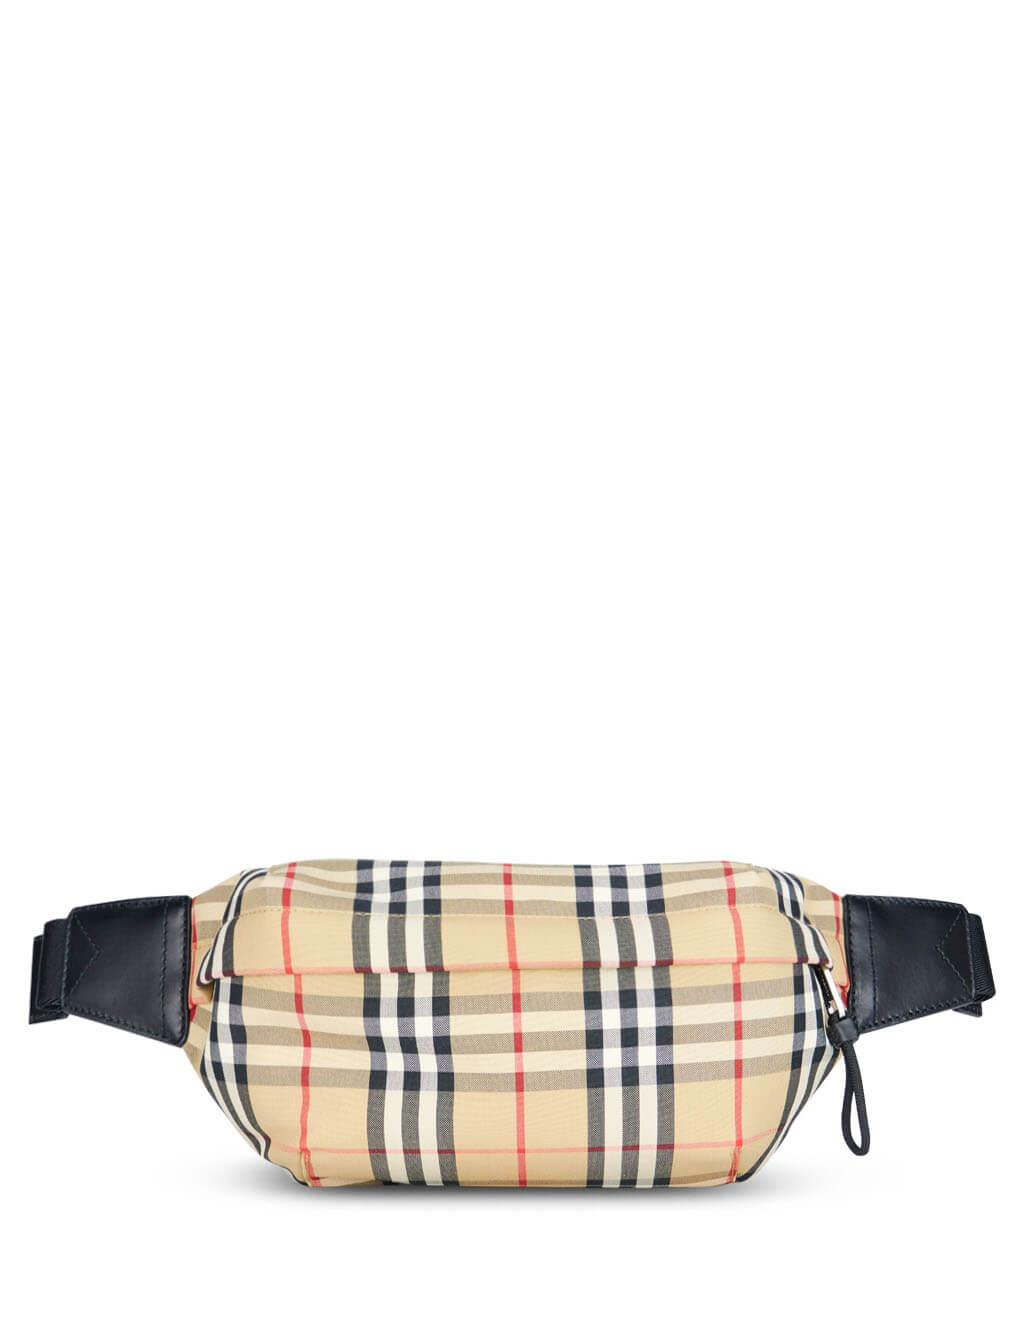 Burberry Men's Beige Vintage Check Bonded Belt Bag 8010430A5373